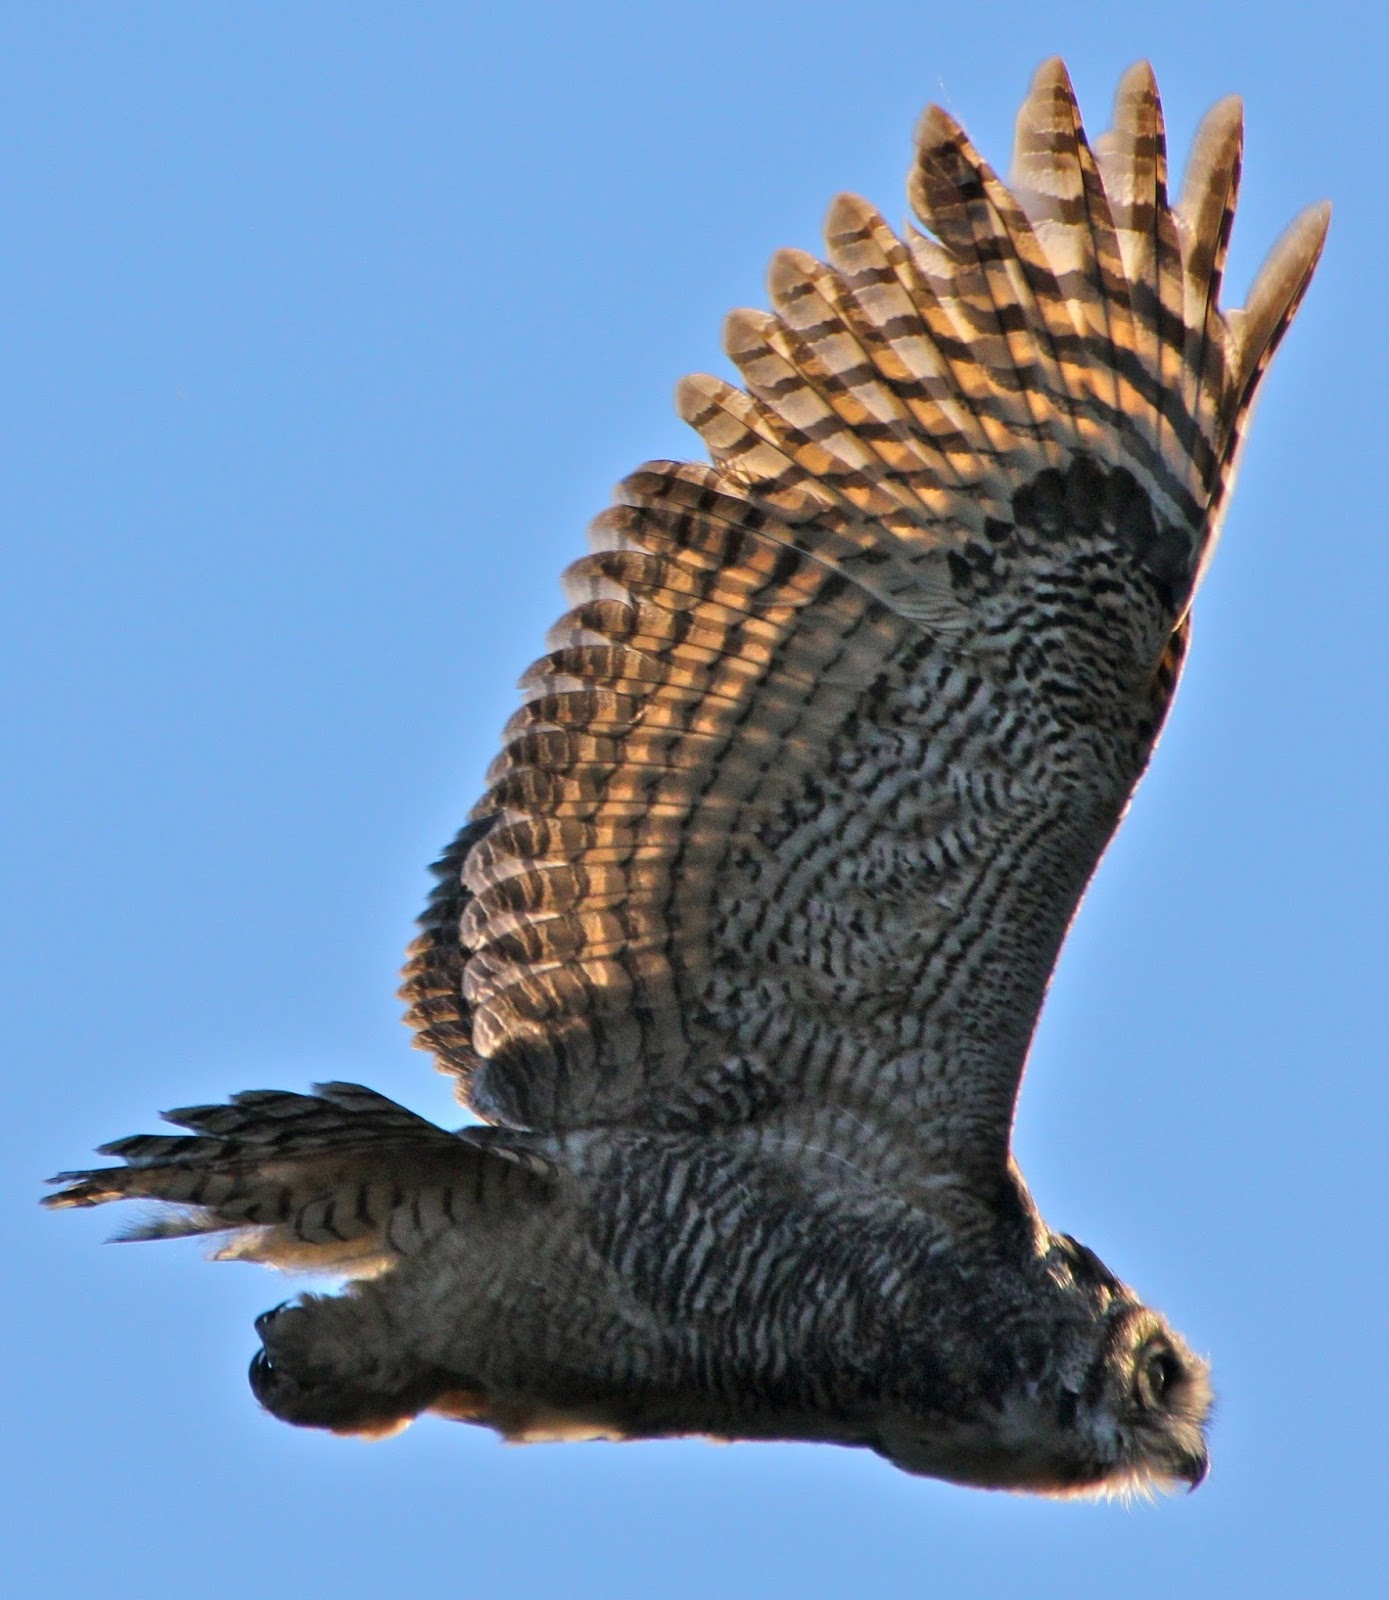 An amazing shot of the great horned owl in flight.